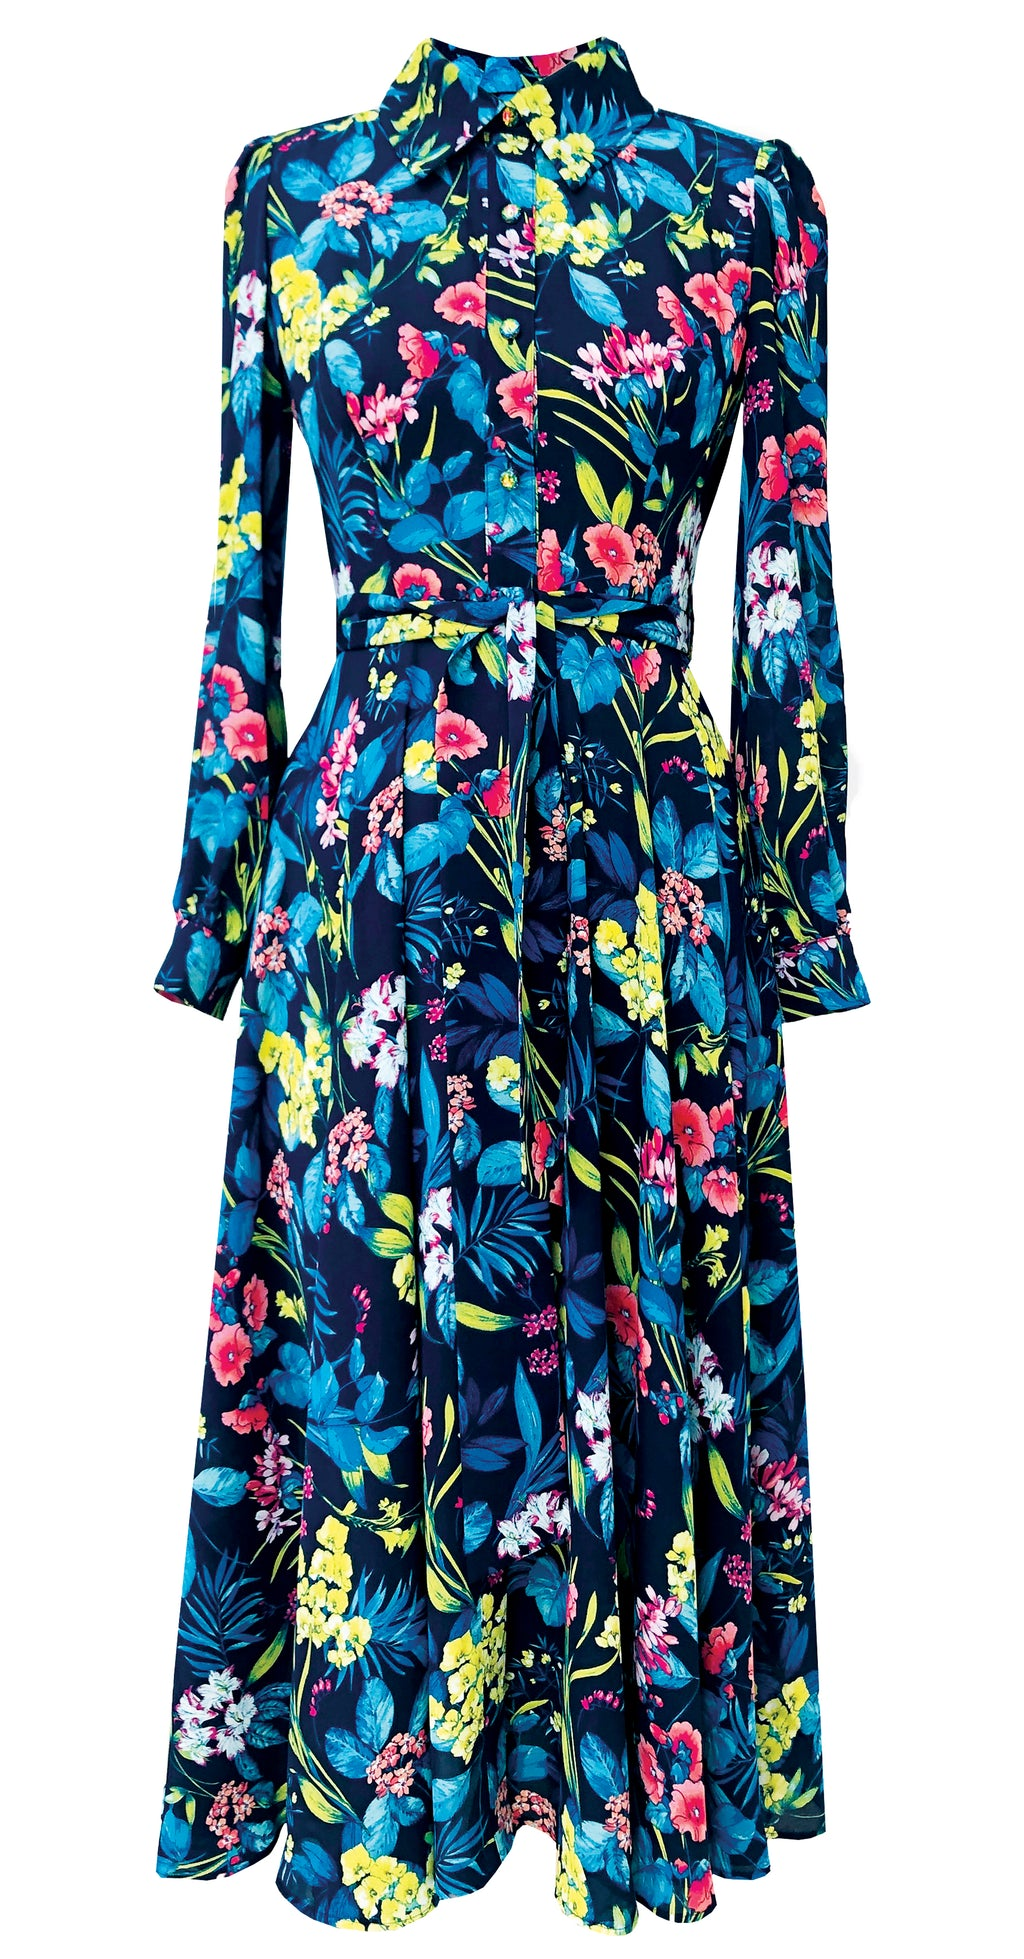 Fairytale Shirt Dress DRC345 Tropical Print